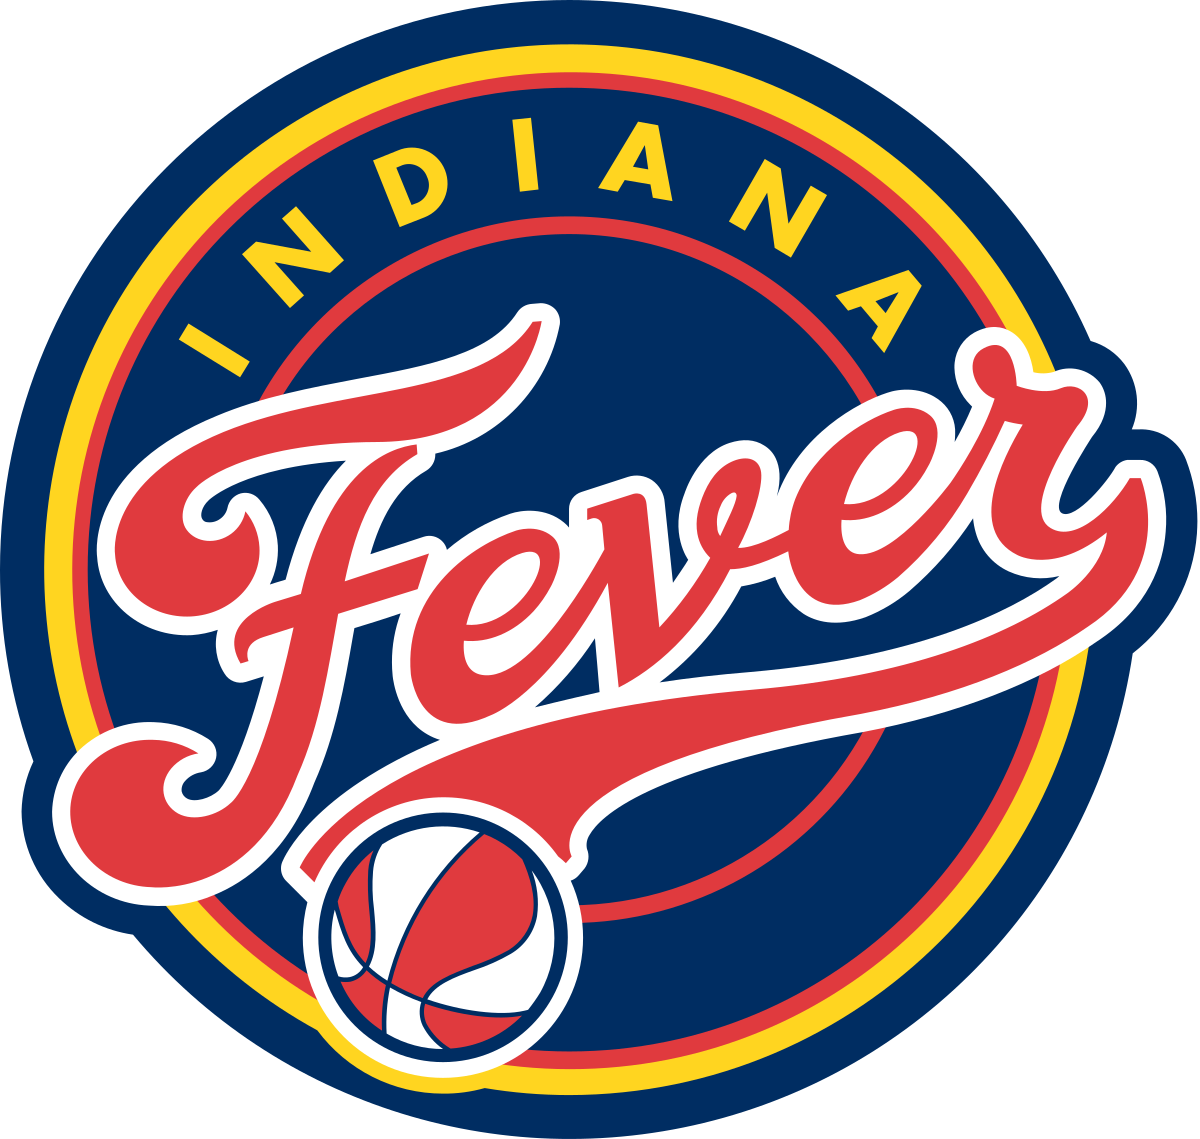 Programme TV Indiana Fever